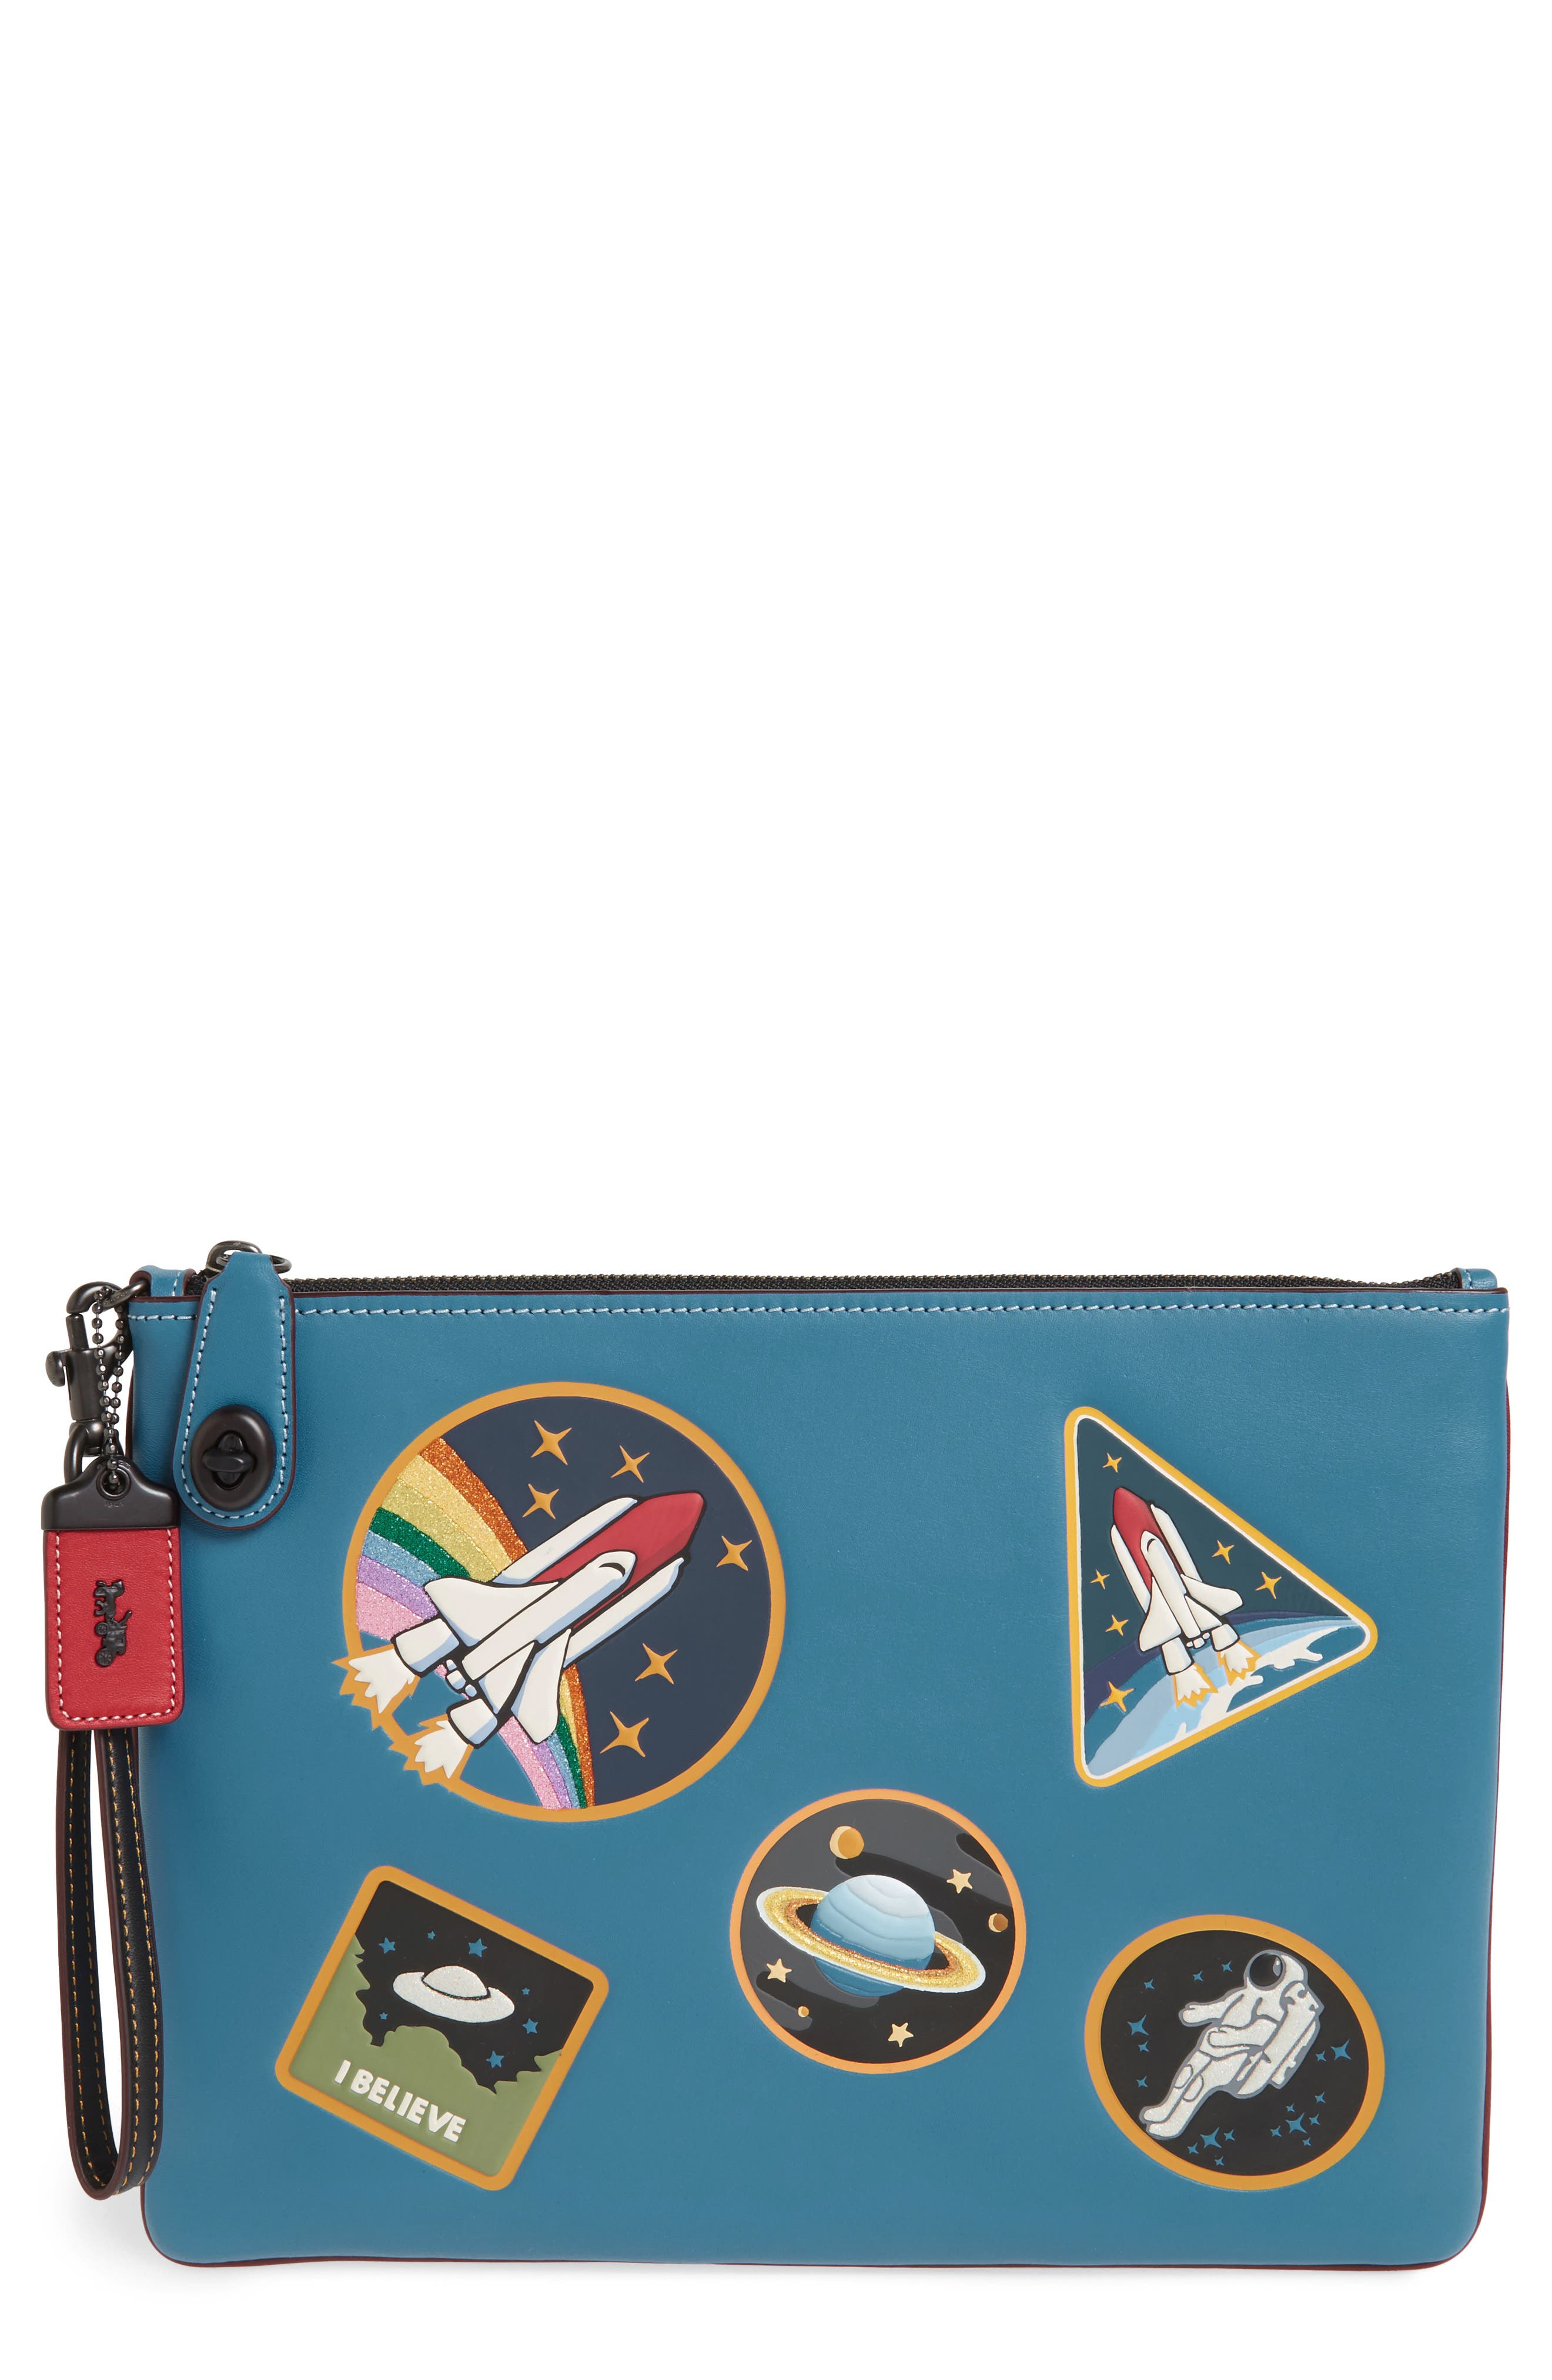 Alternate Image 1 Selected - COACH 1941 Space Patches Leather Wristlet